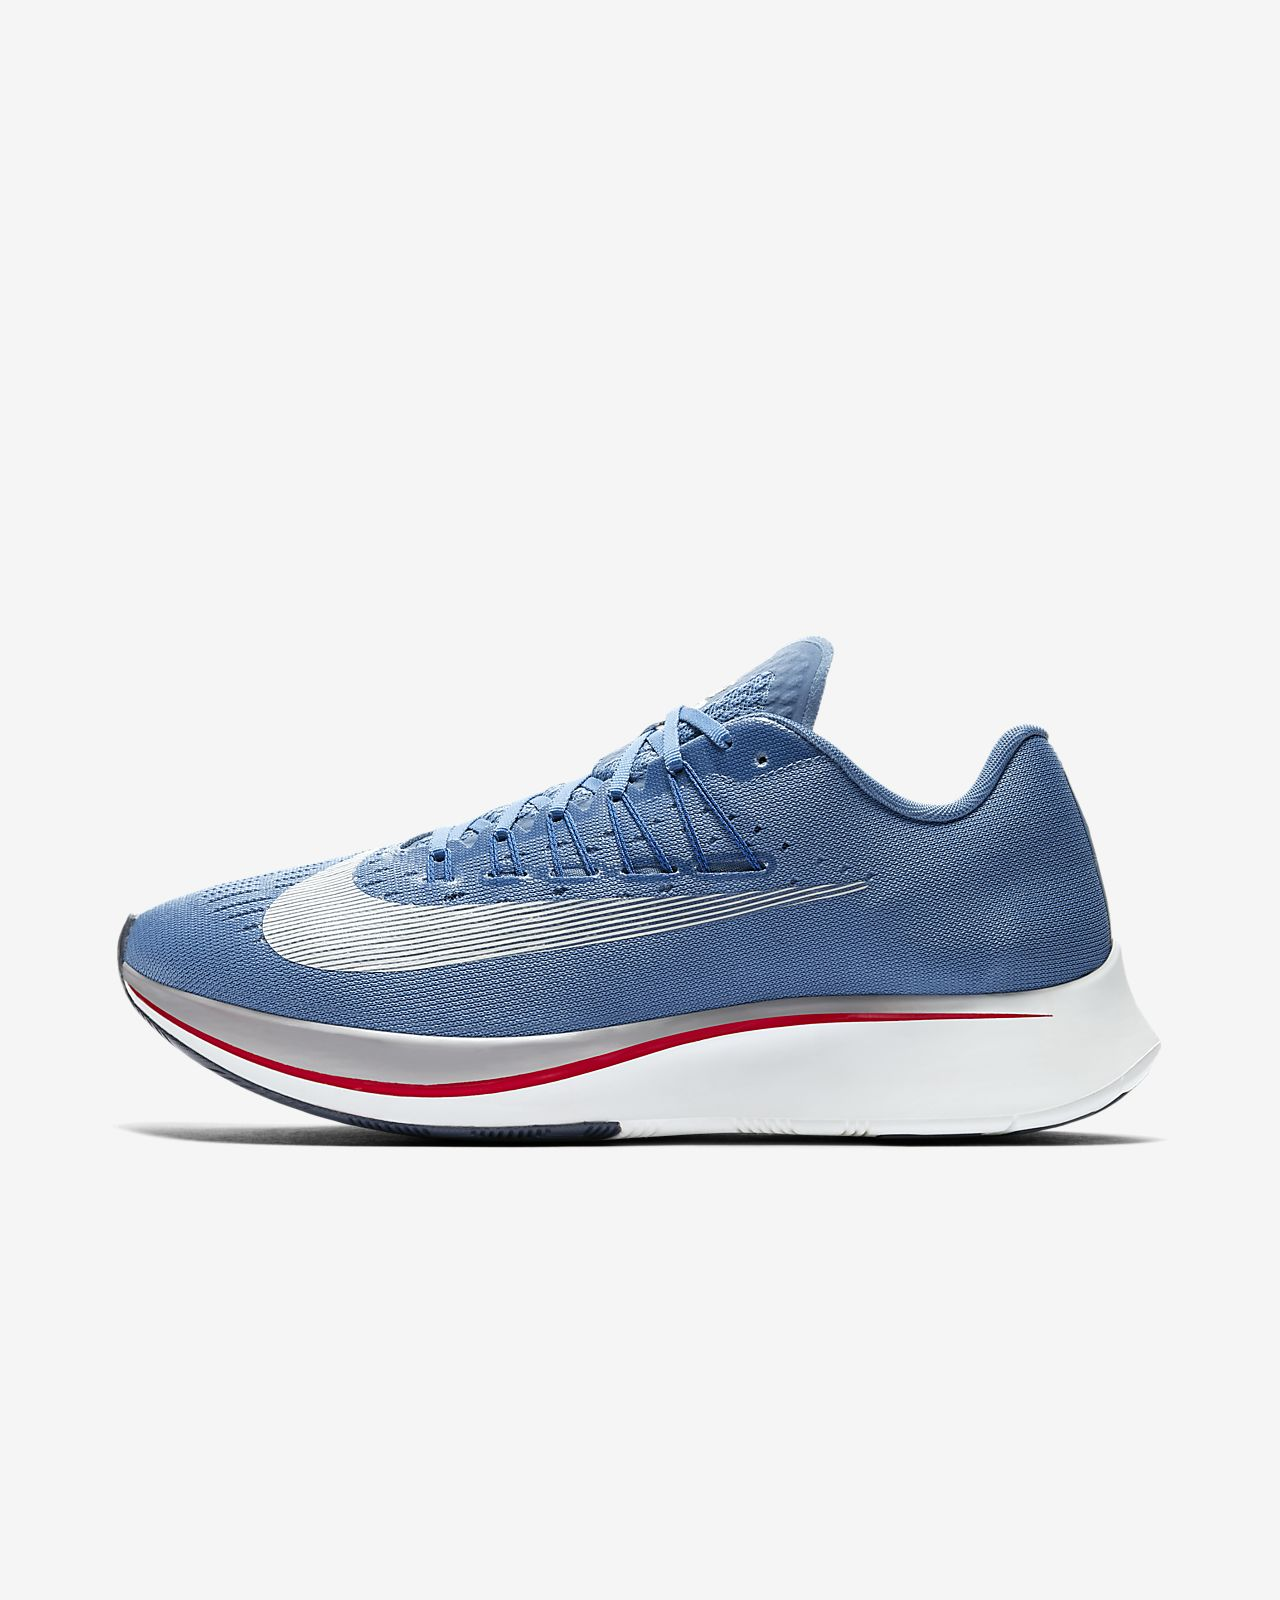 Nike Elite SI Trainers Mens Trainers Shop Mens Trainers COLOUR-blue/navy